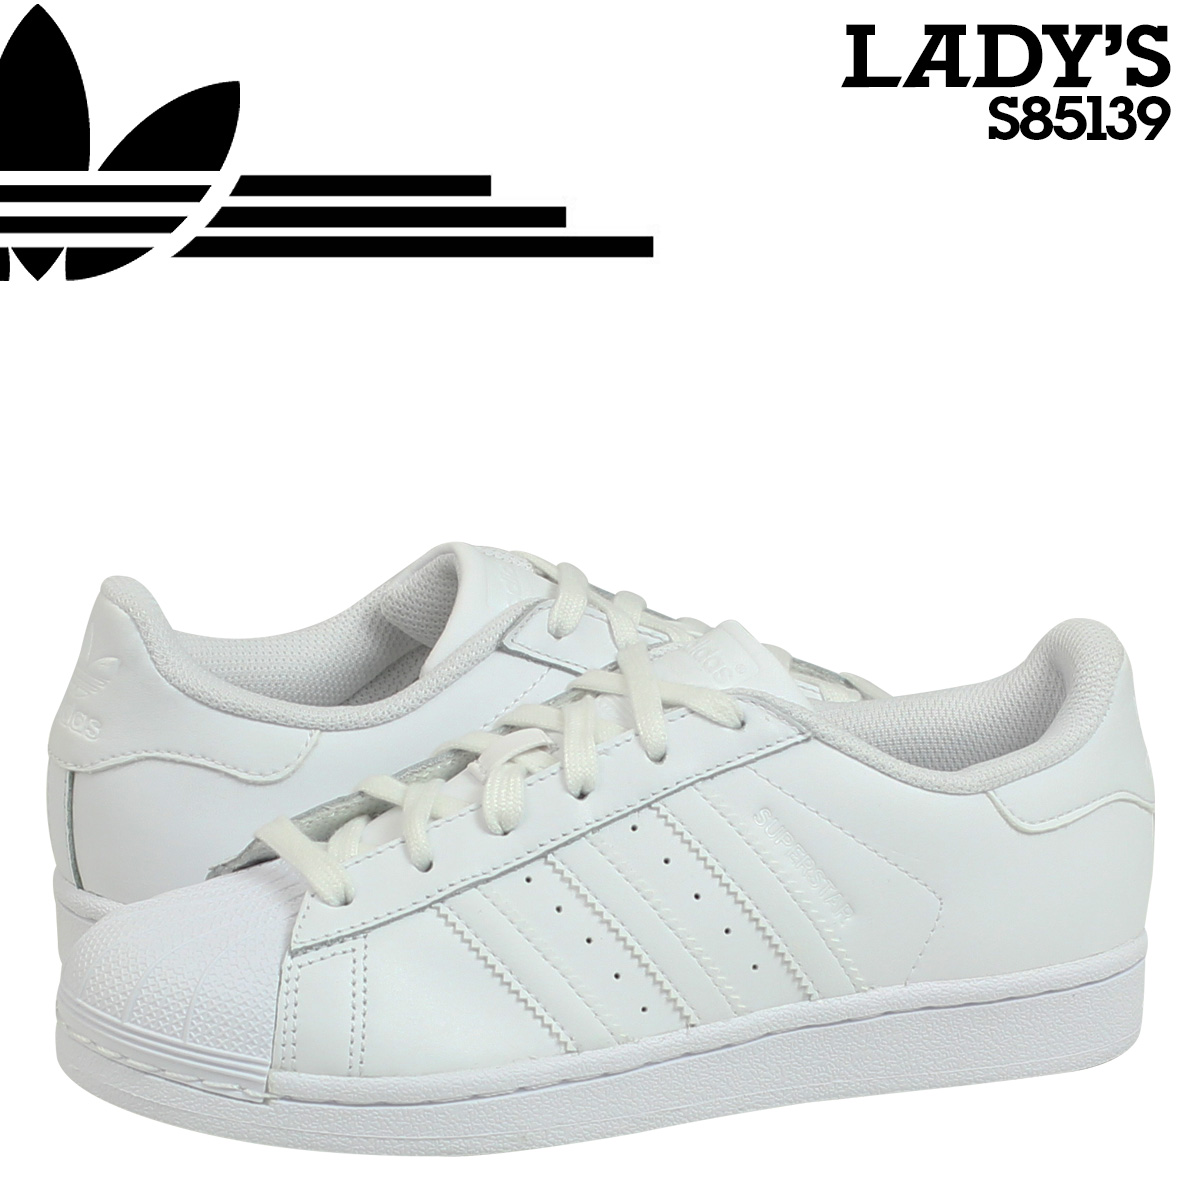 check out 4bee3 e0220 Adidas originals adidas Originals Womens SUPERSTAR W sneakers Super Star  S85139 white [8/15 new in stock]